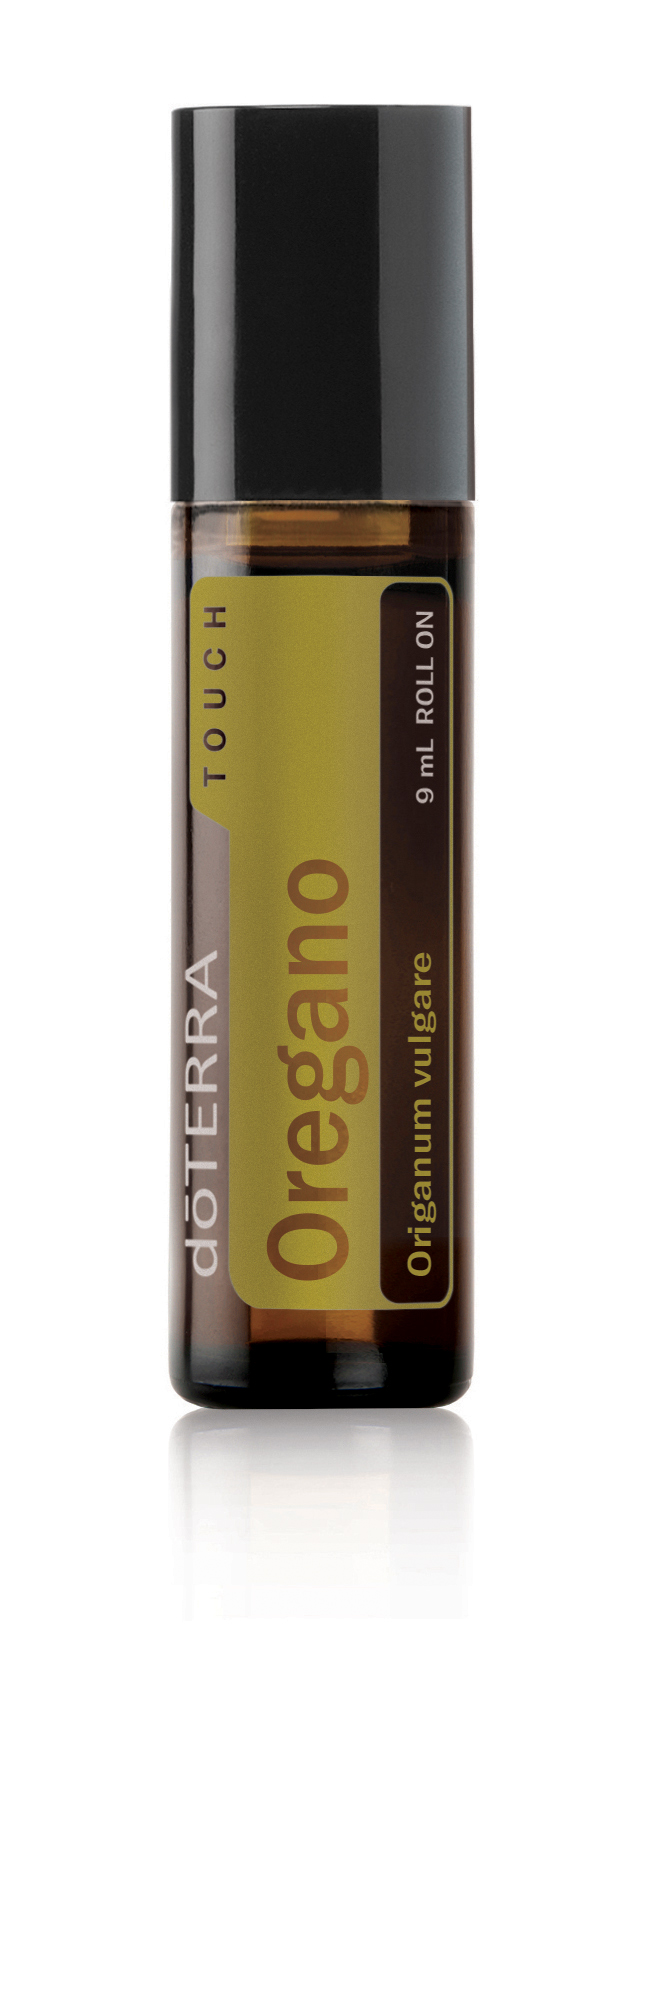 doTERRA Touch Oregano 9ml